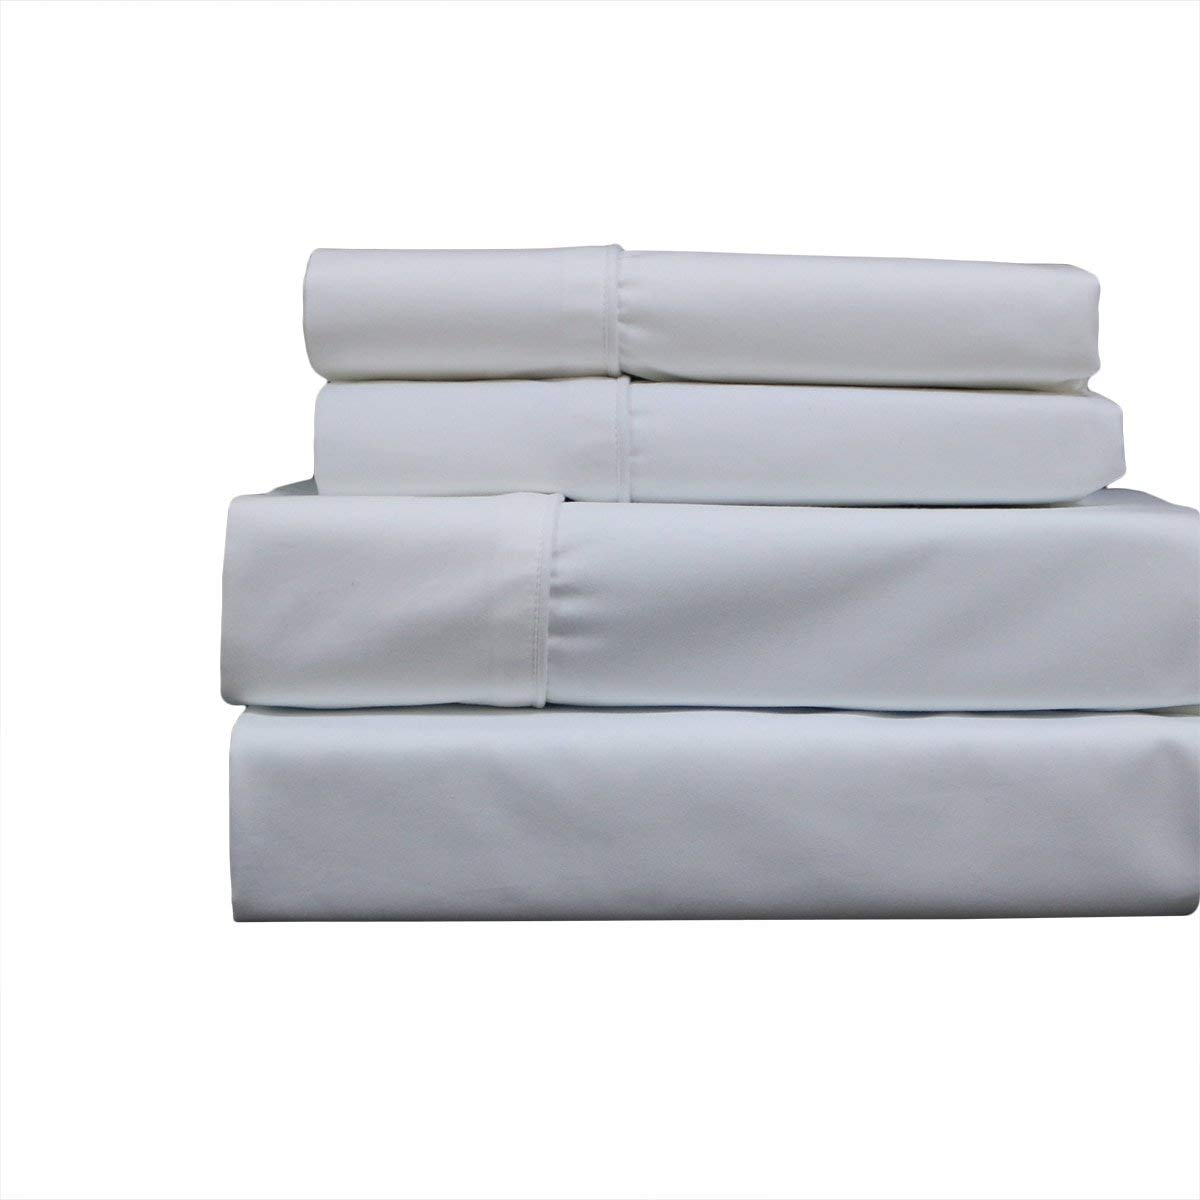 About California Queen Mattress Amazon.com: Sheetsnthings Bed Sheet Set, 650 Thread Count -California Queen,  Solid White- Soft, Cotton Blend, 4PC Sheets: Home u0026 Kitchen